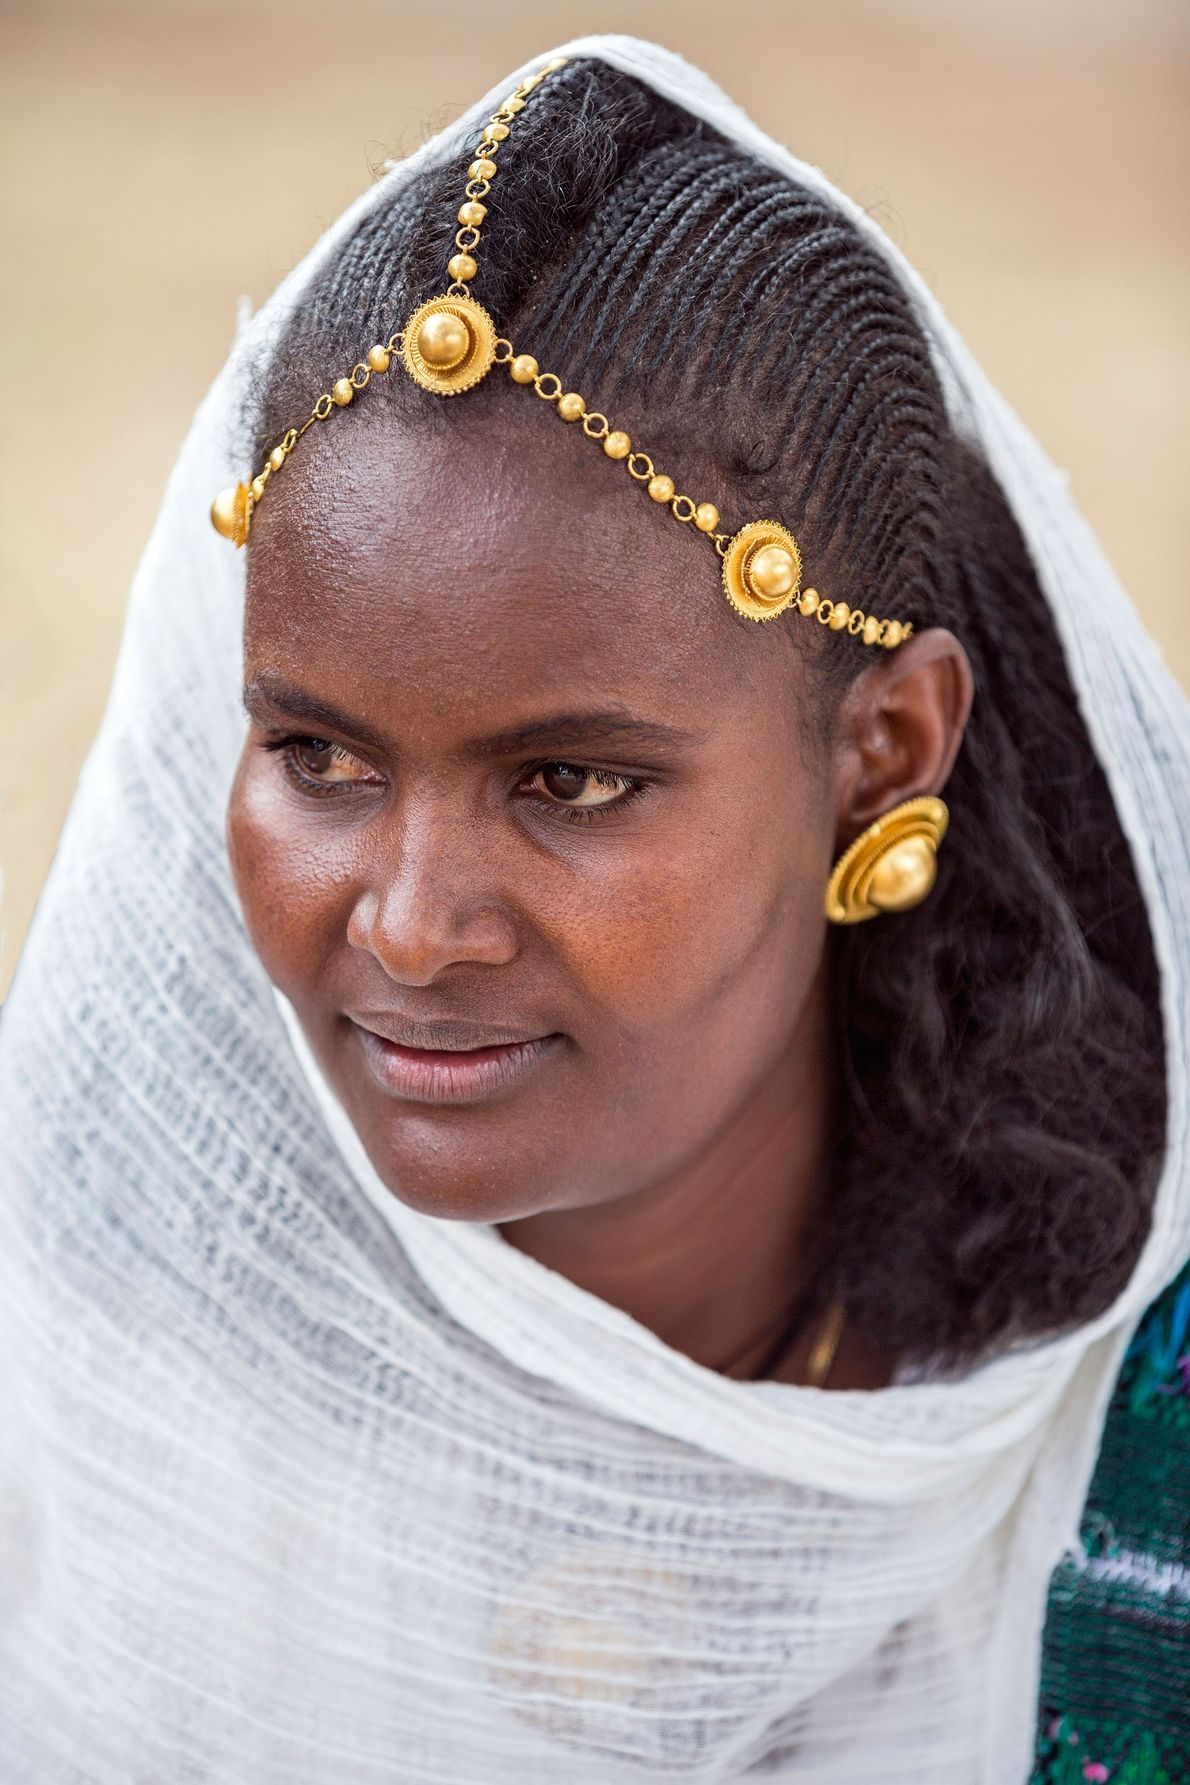 A young Ethiopian woman with distinctive hairstyle and jewellery.